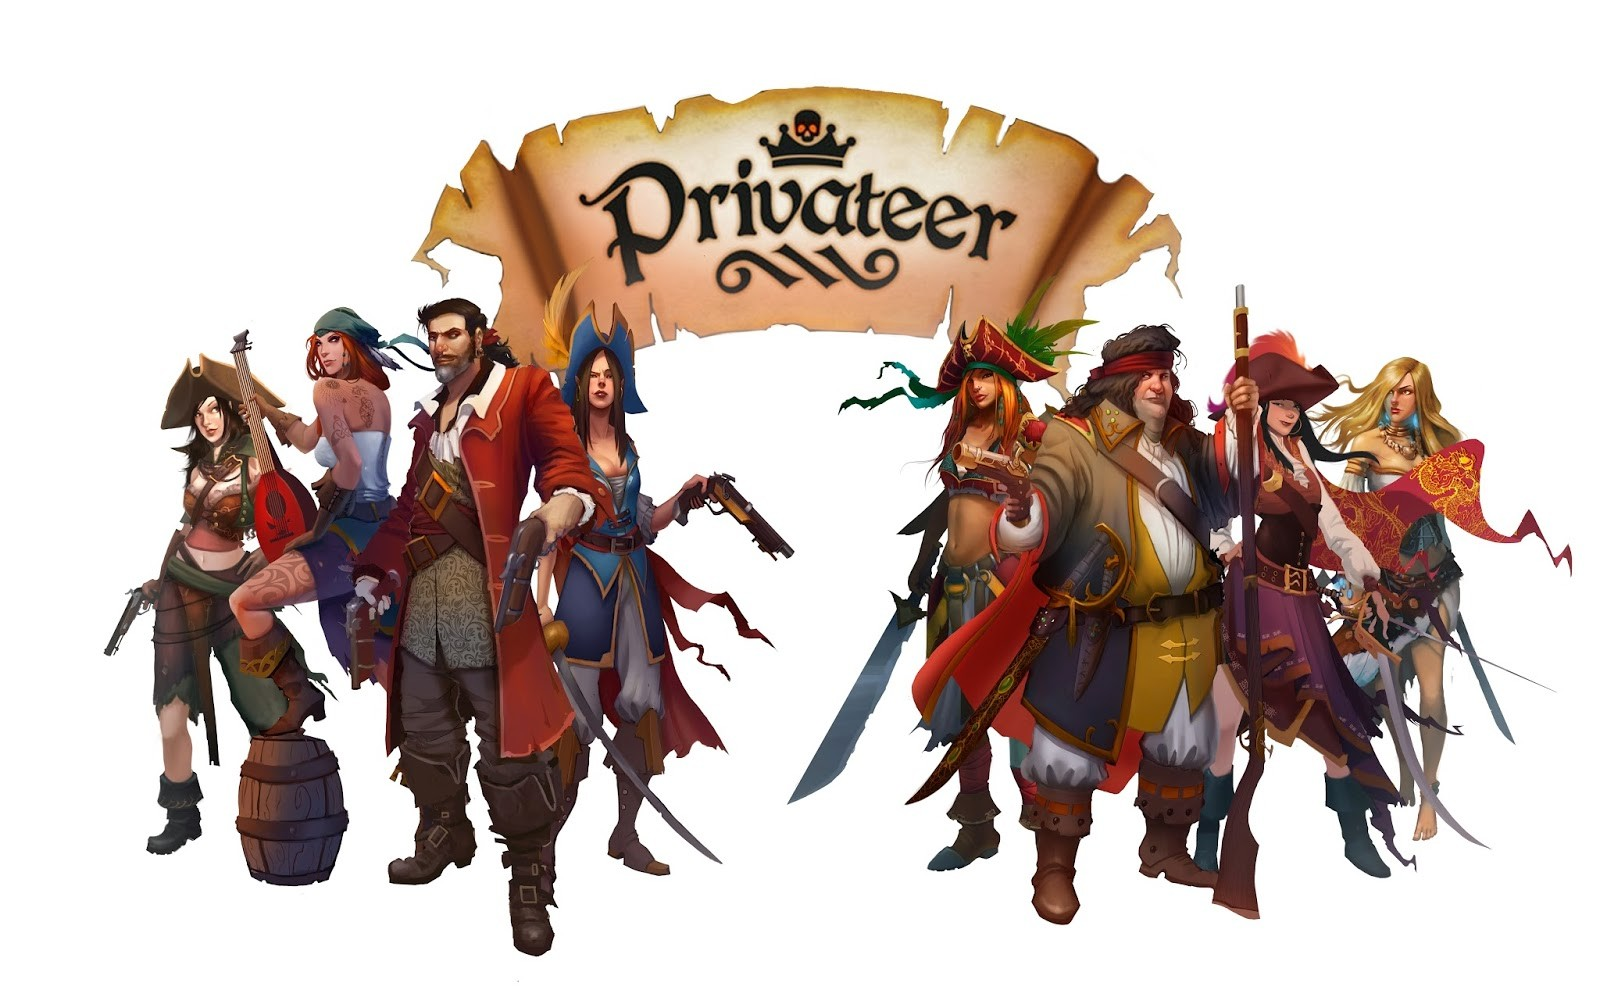 privateer campaign poster